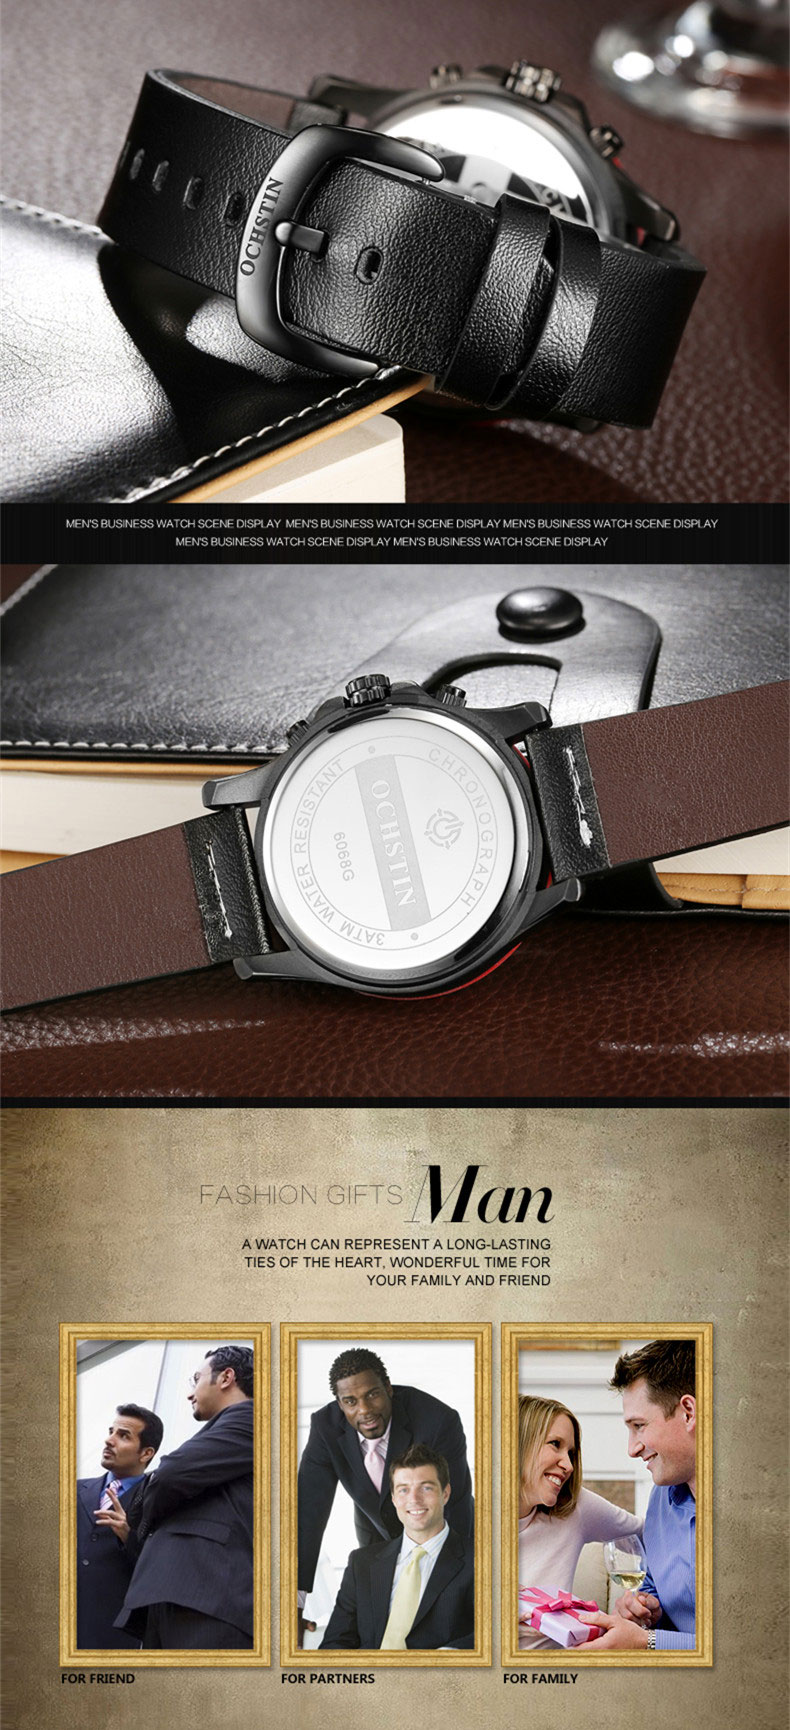 17 Men Watches Luxury Top Brand OCHSTIN Sports Chronograph Fashion Male Dress Leather Belt Clock Waterproof Quartz Wrist Watch 10